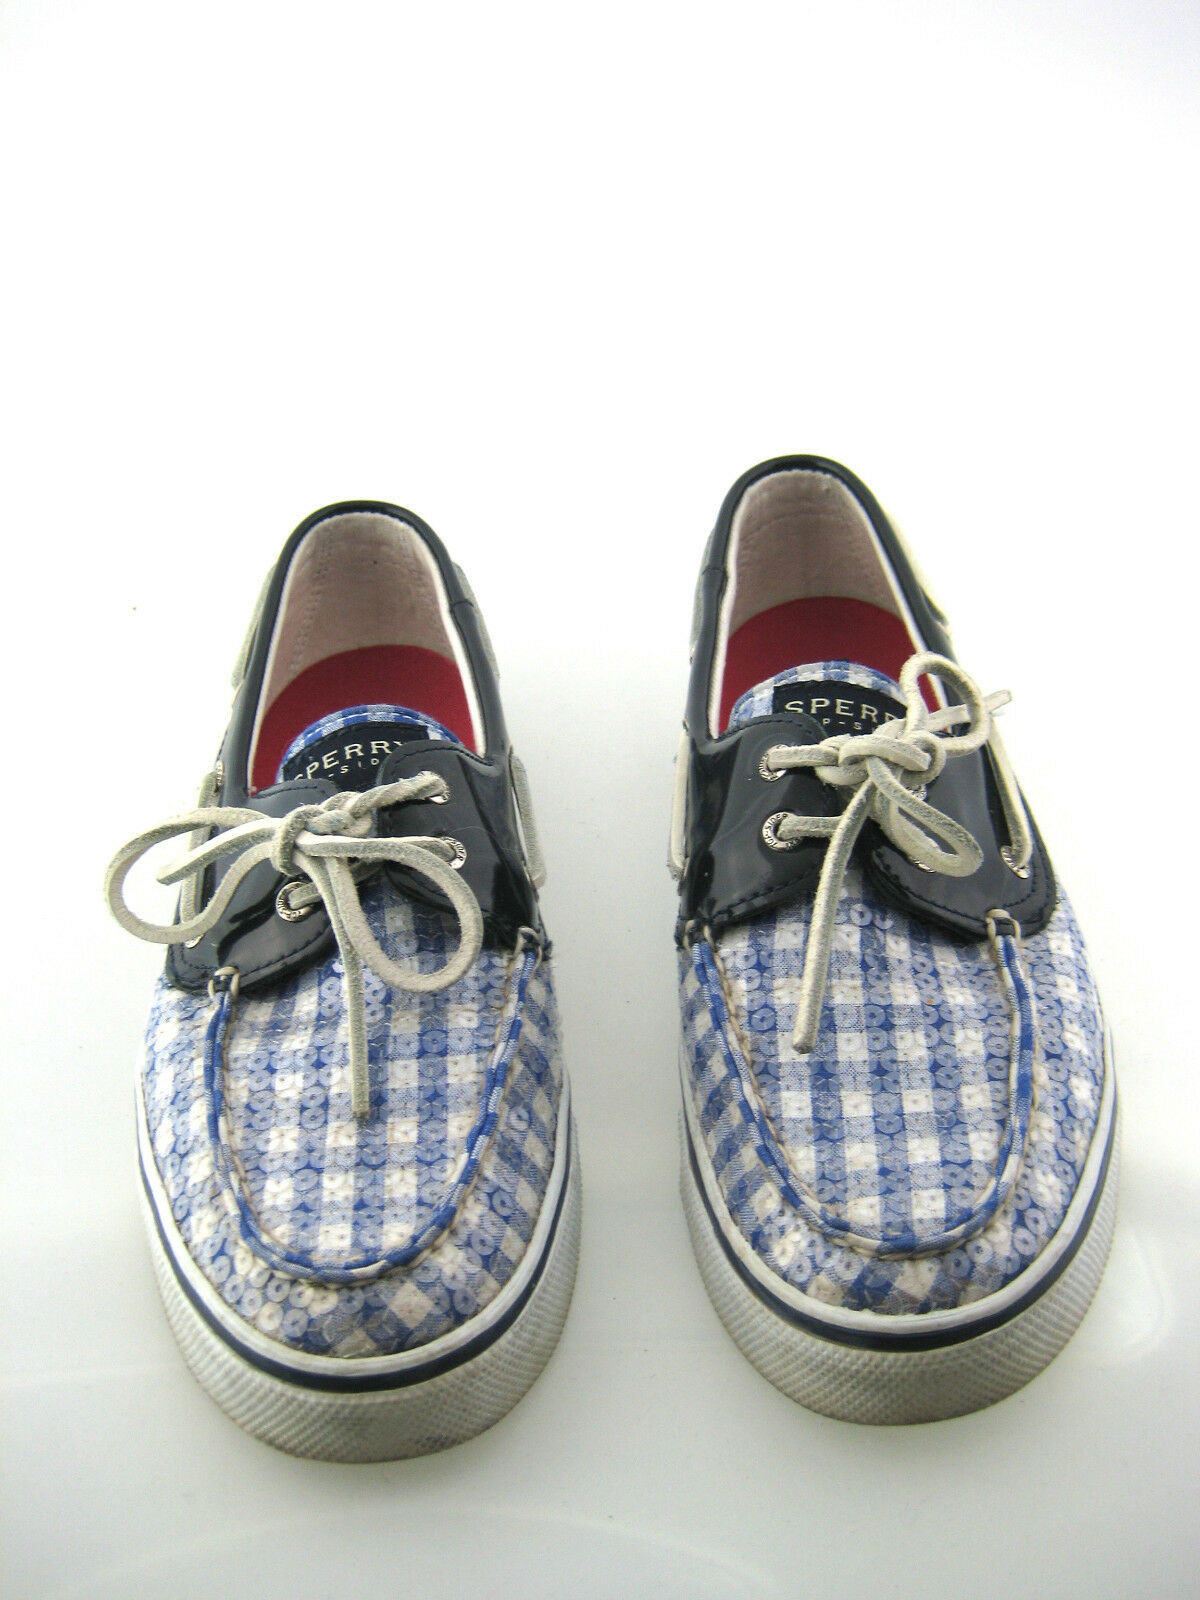 SPERRY TOP-SIDER bleu Plaid Sequin Boat chaussures Loafer Flat Taille 9